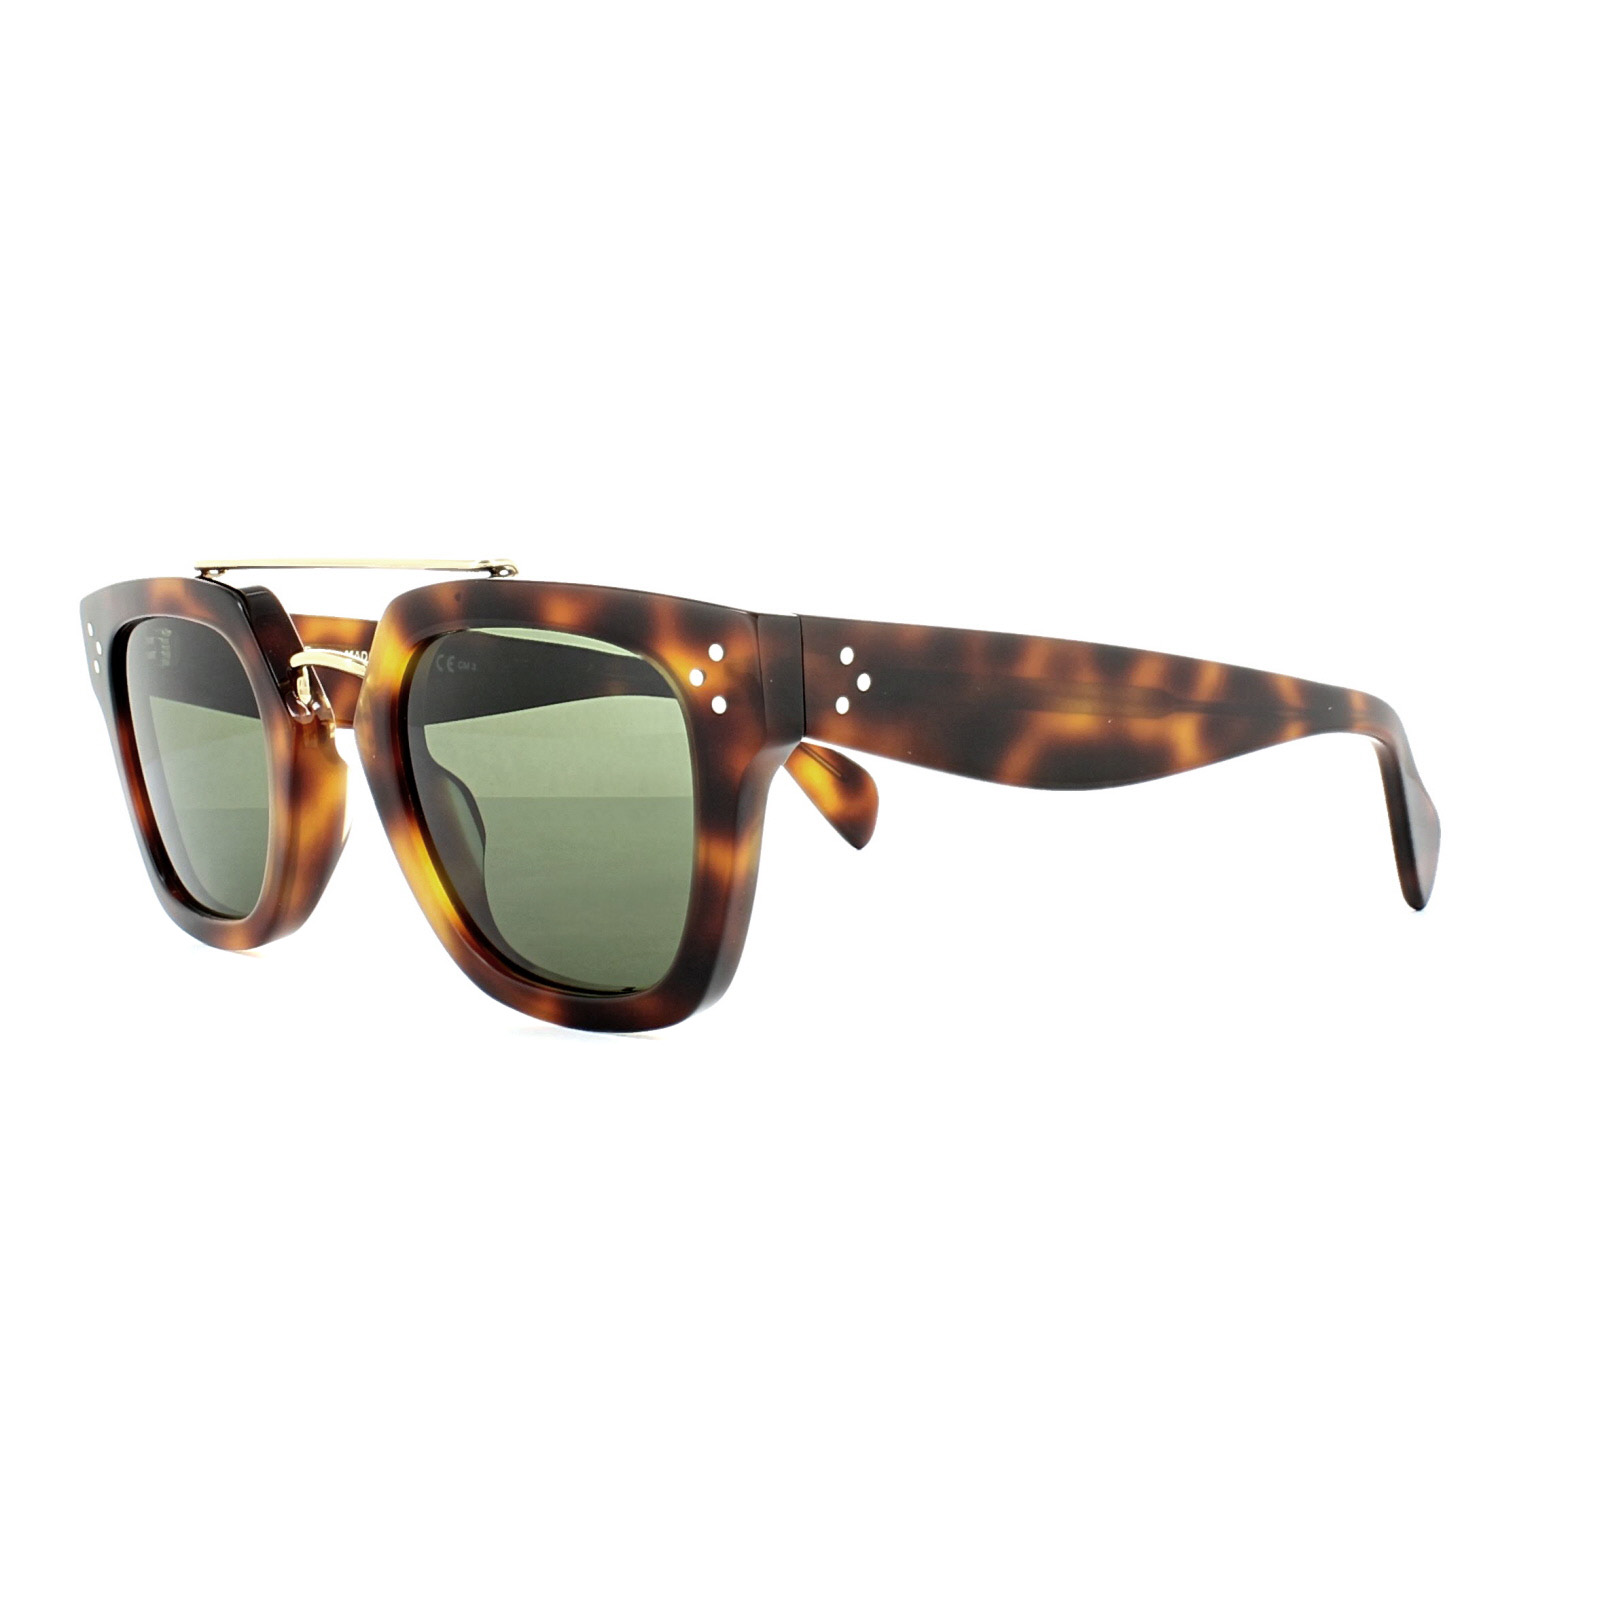 cad1df9f01e8 Sentinel Celine Sunglasses 41077 S Bridge 05L 1E Havana Grey Green